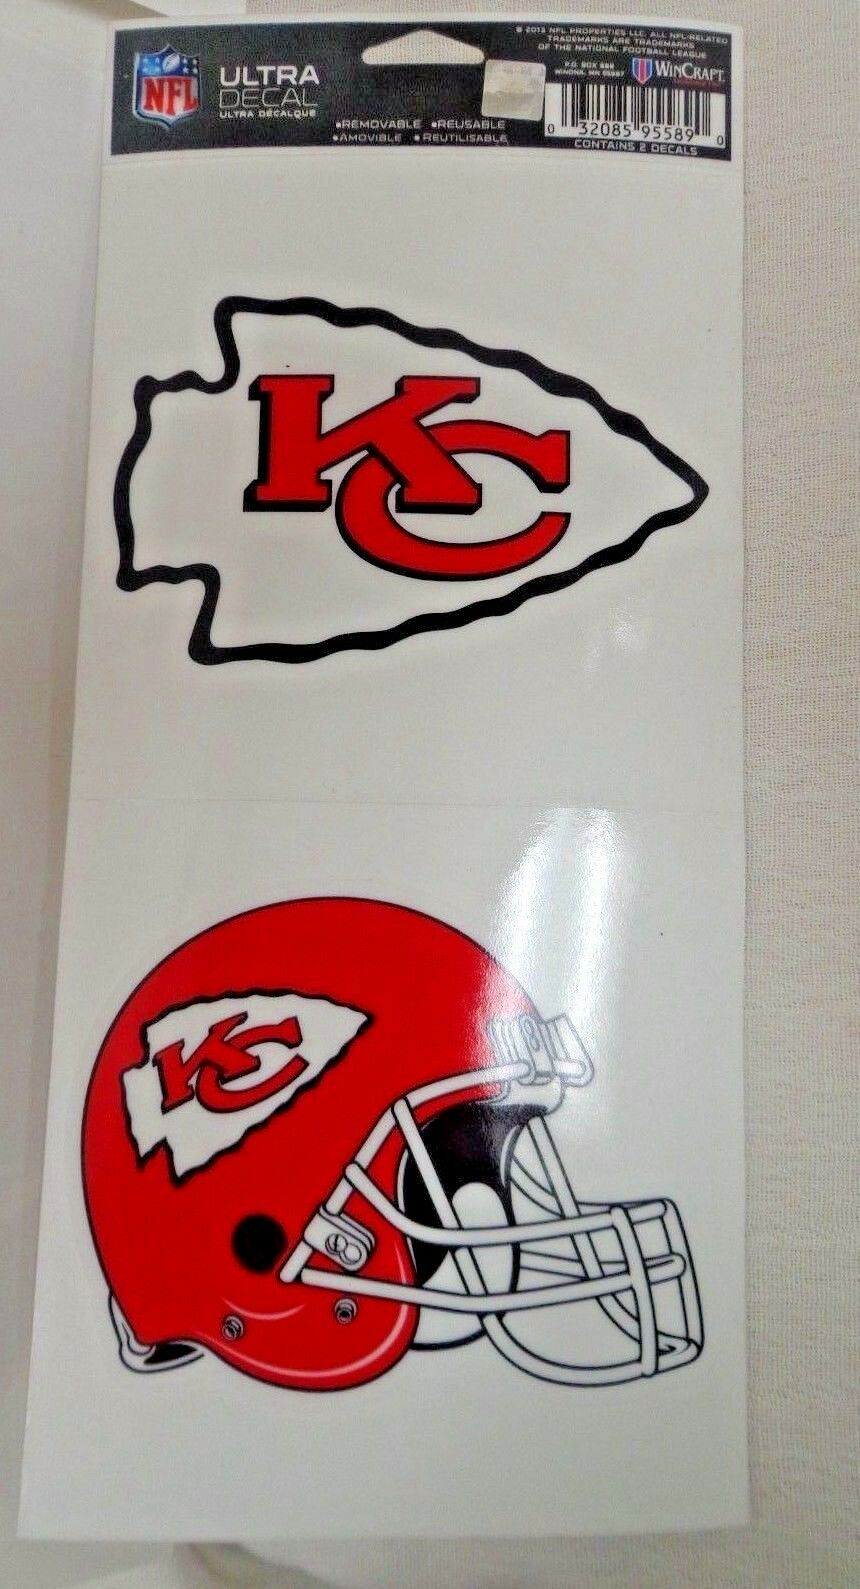 NFL Ultra Decals 2 Pack Set Removable Reusable Sticker Wincraft Kansas City Chiefs